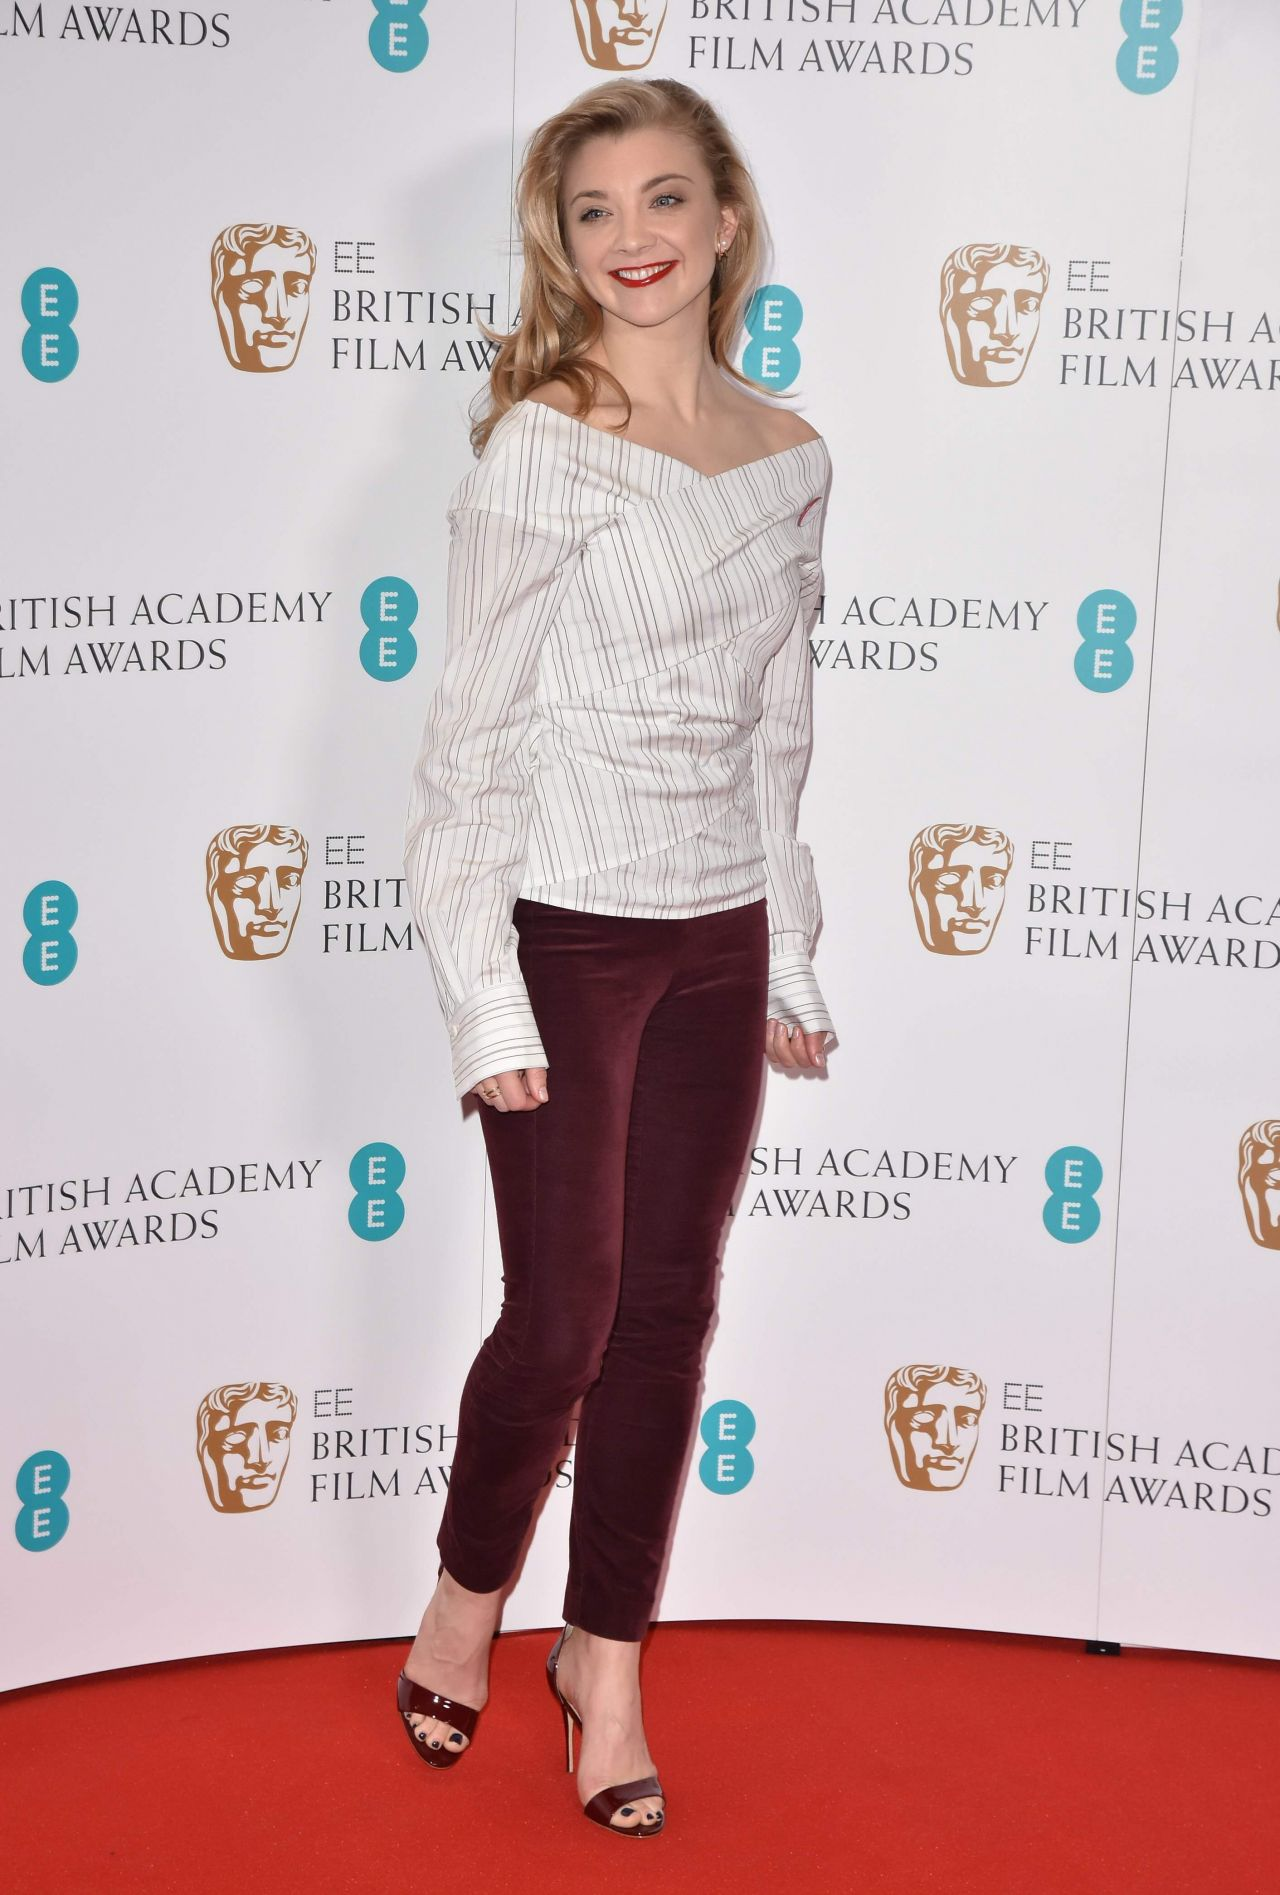 http://celebmafia.com/wp-content/uploads/2018/01/natalie-dormer-ee-british-academy-film-awards-nominations-announcement-in-london-1.jpg